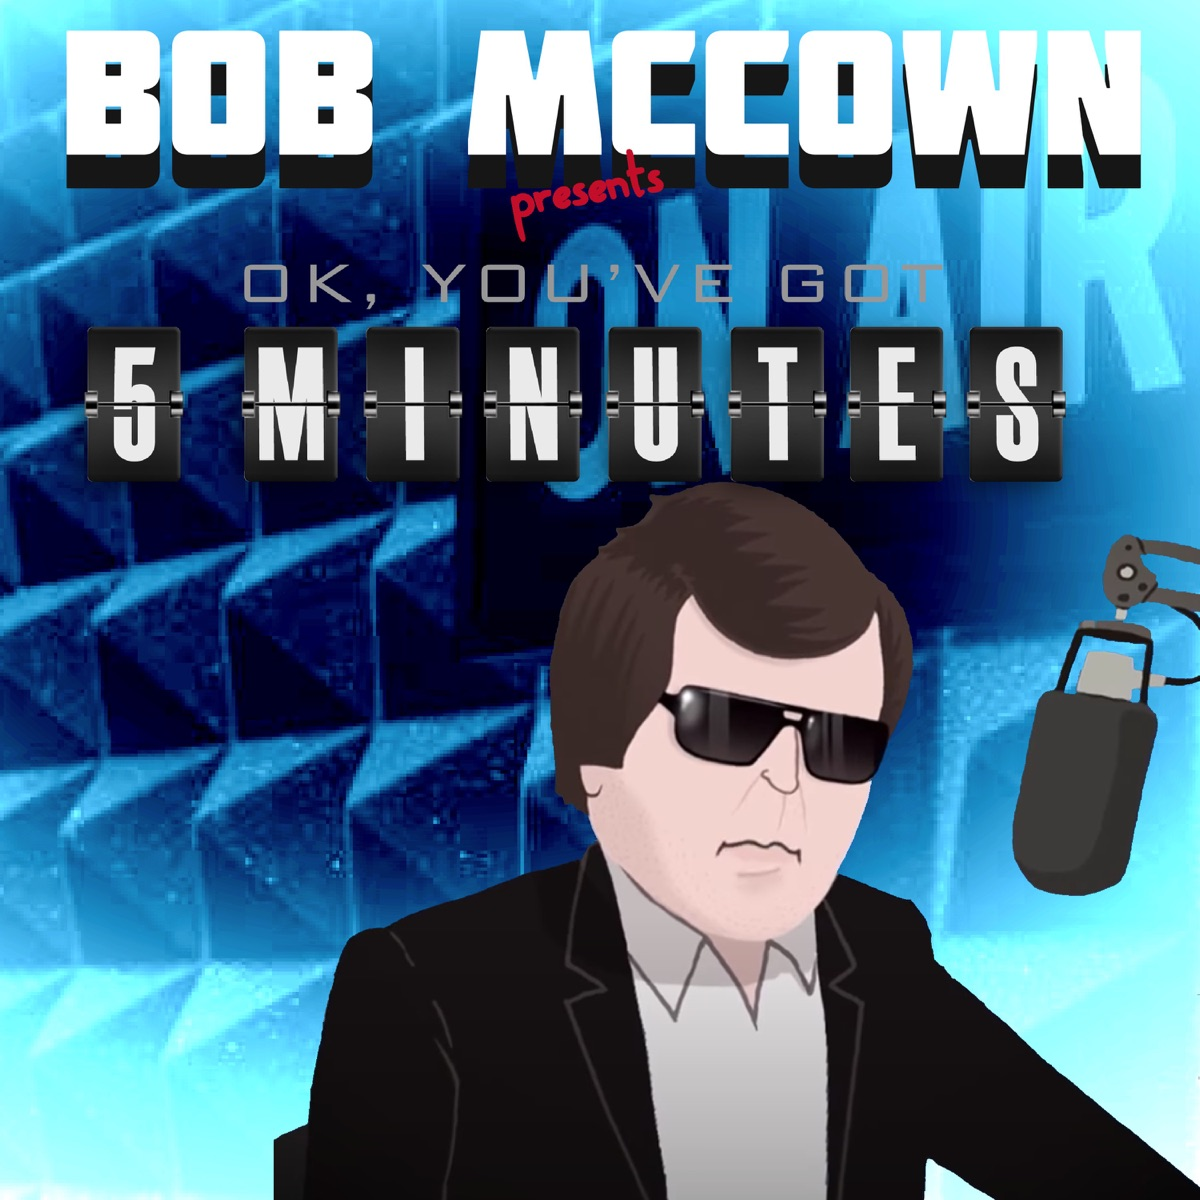 Bob McCown presents OK, You've Got 5 Minutes